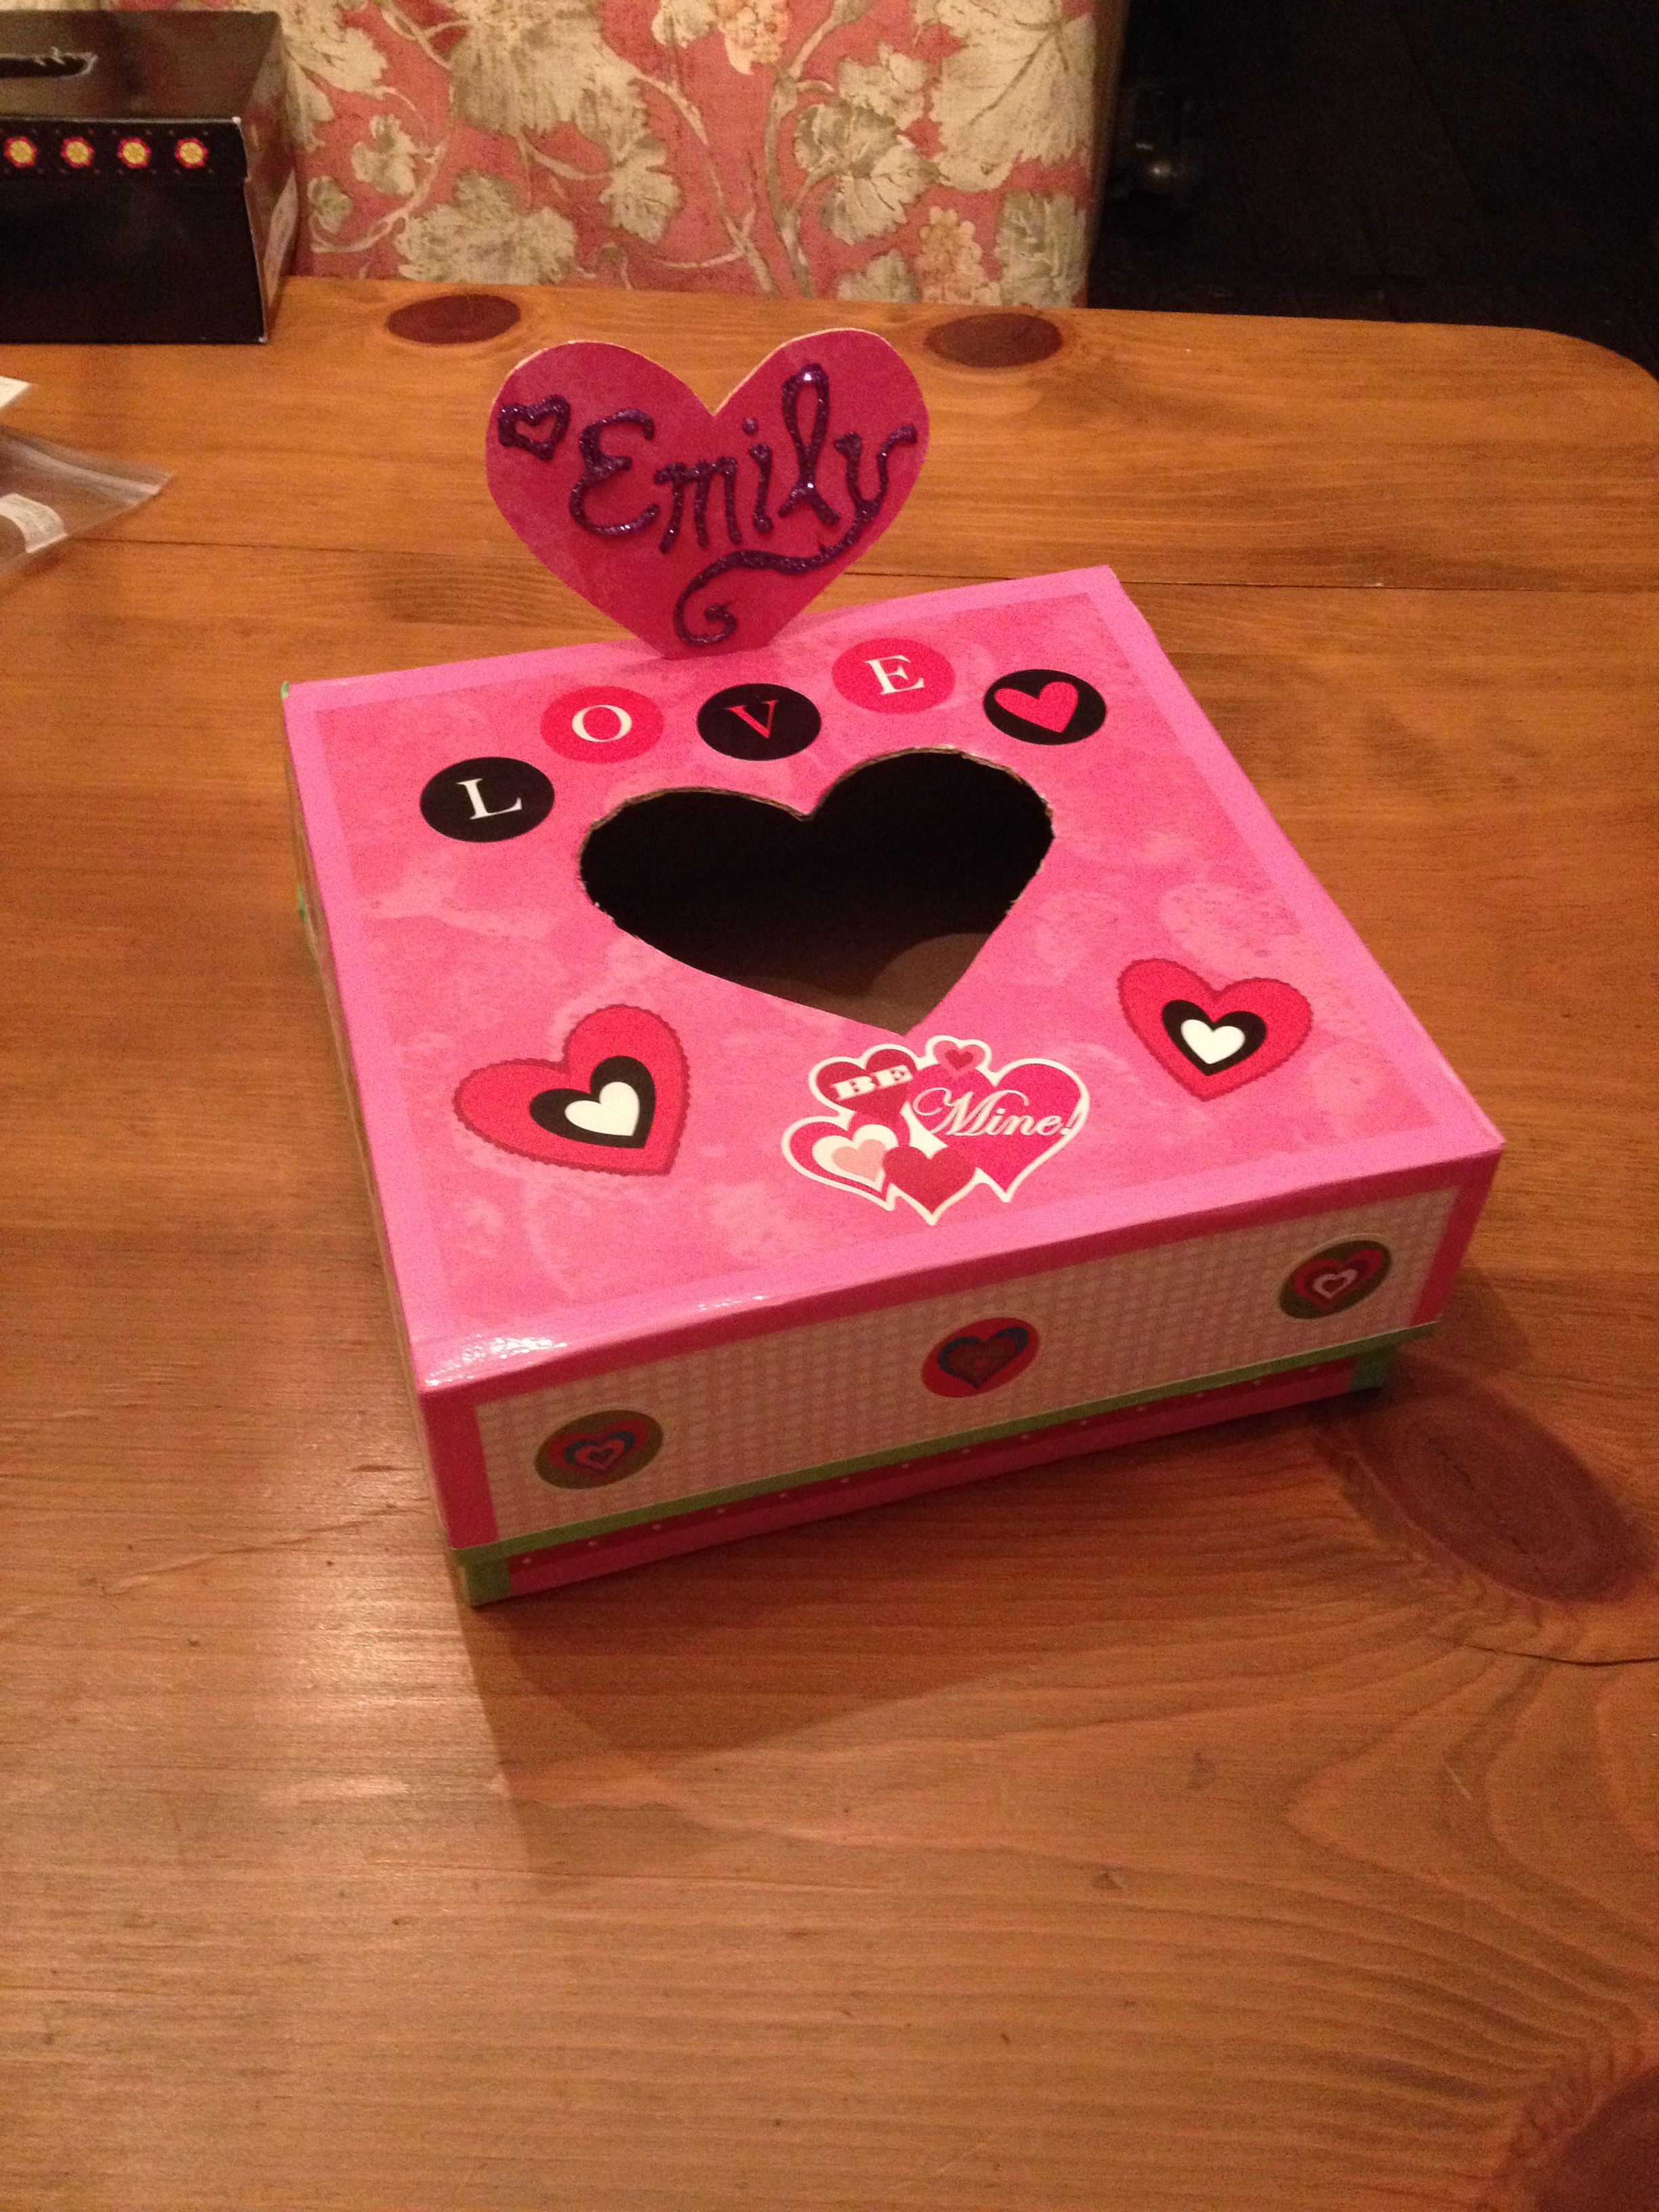 Decorated Shoebox For Valentine S Day At School We Used The Heart Cutout As A Name Tag Valentine Crafts Valentine Box Valentines